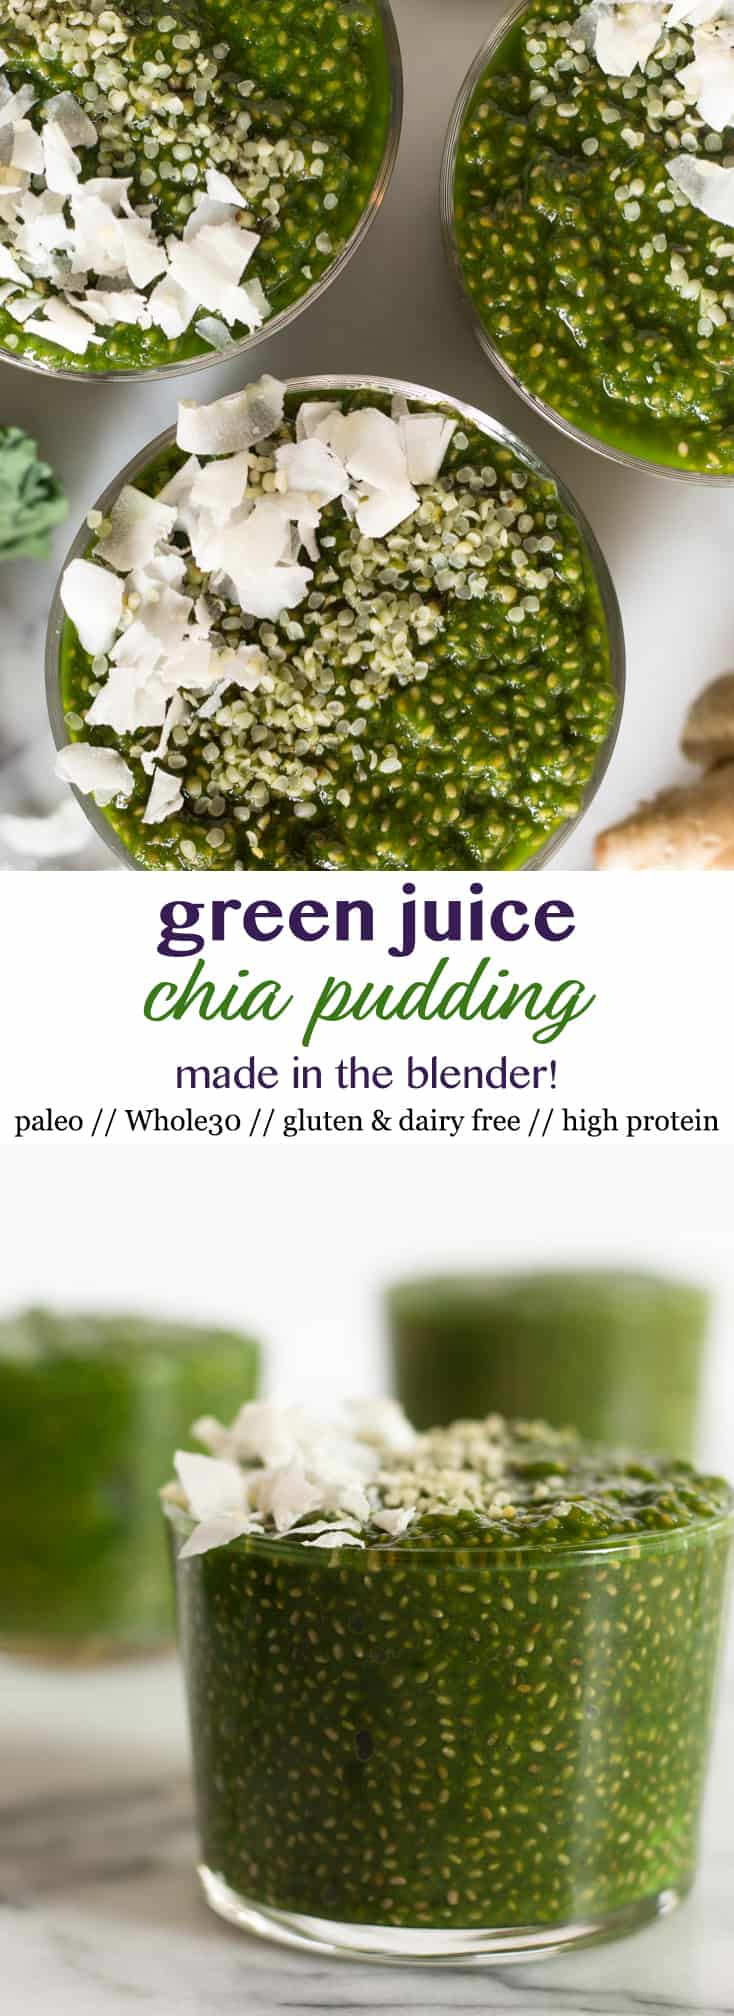 Pinterest image green juice chia pudding